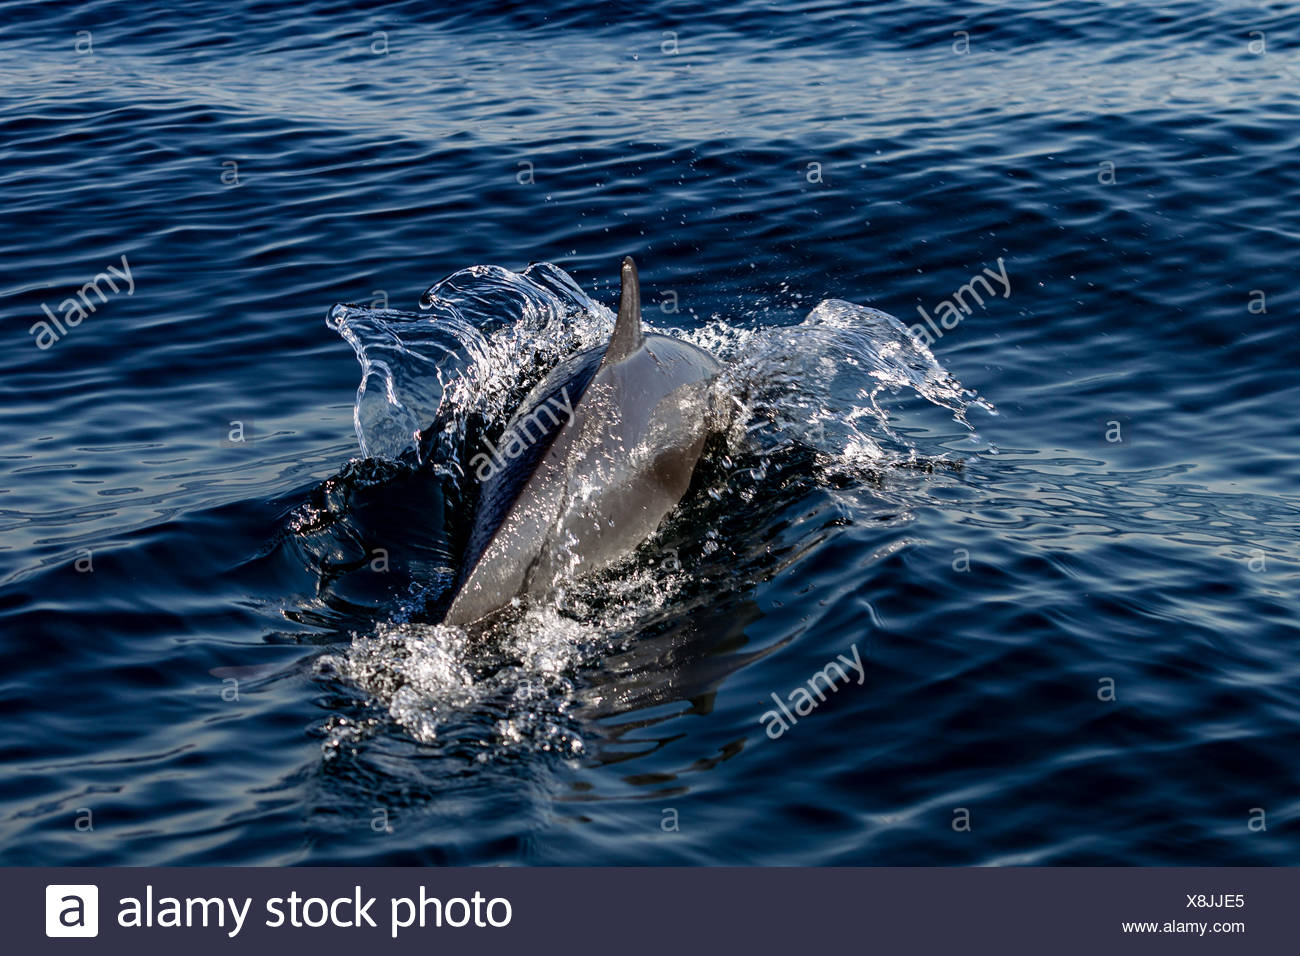 Pantropical Dolphin breaching for air, Port St. Johns, South Africa - Stock Image